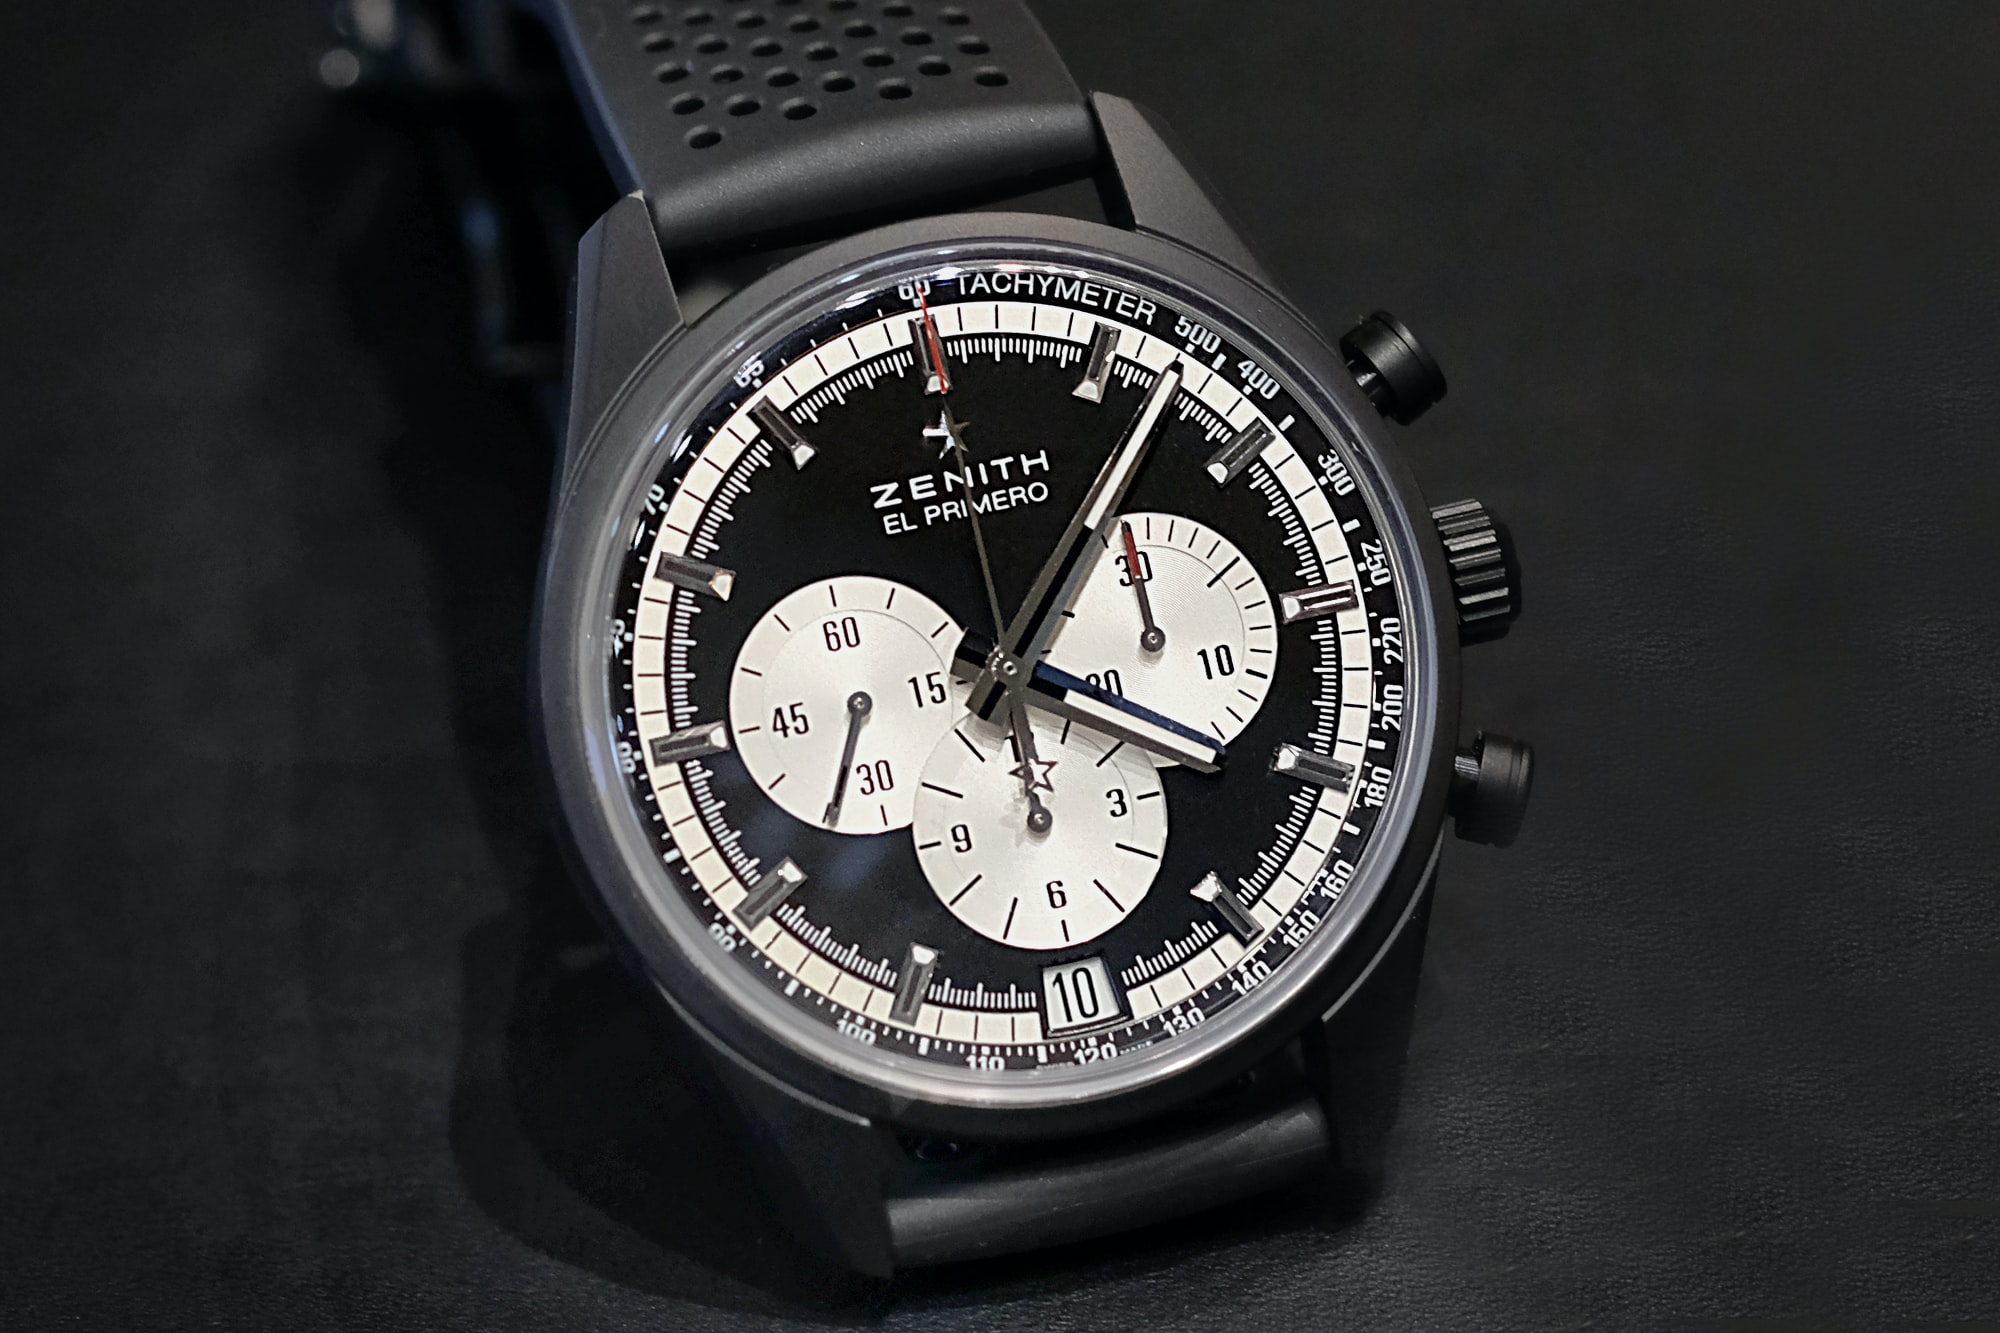 Zenith El Primero 42mm Introducing: The Zenith El Primero 36,000 vph, Or The Return Of The Panda (Live Pics + Details) Introducing: The Zenith El Primero 36,000 vph, Or The Return Of The Panda (Live Pics + Details) zenith 02